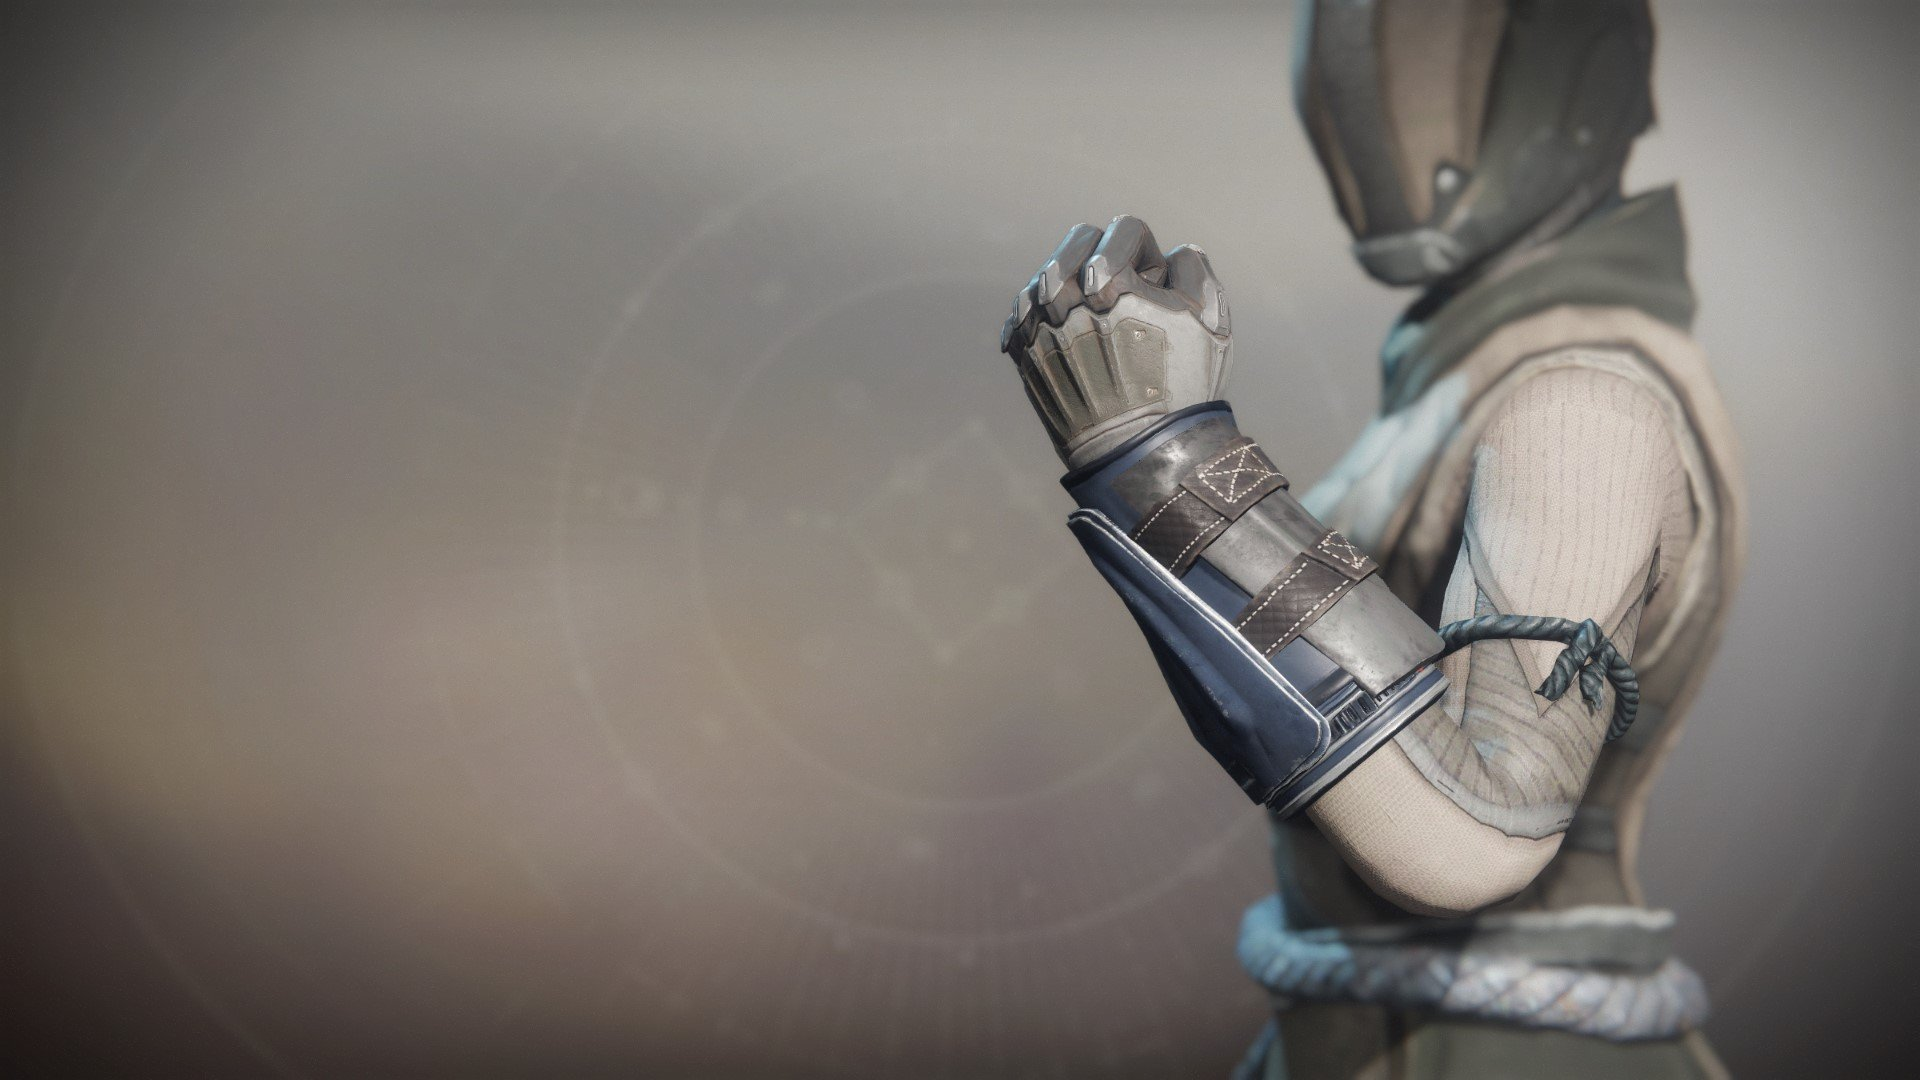 An in-game render of the Xenos Shore Ornament.